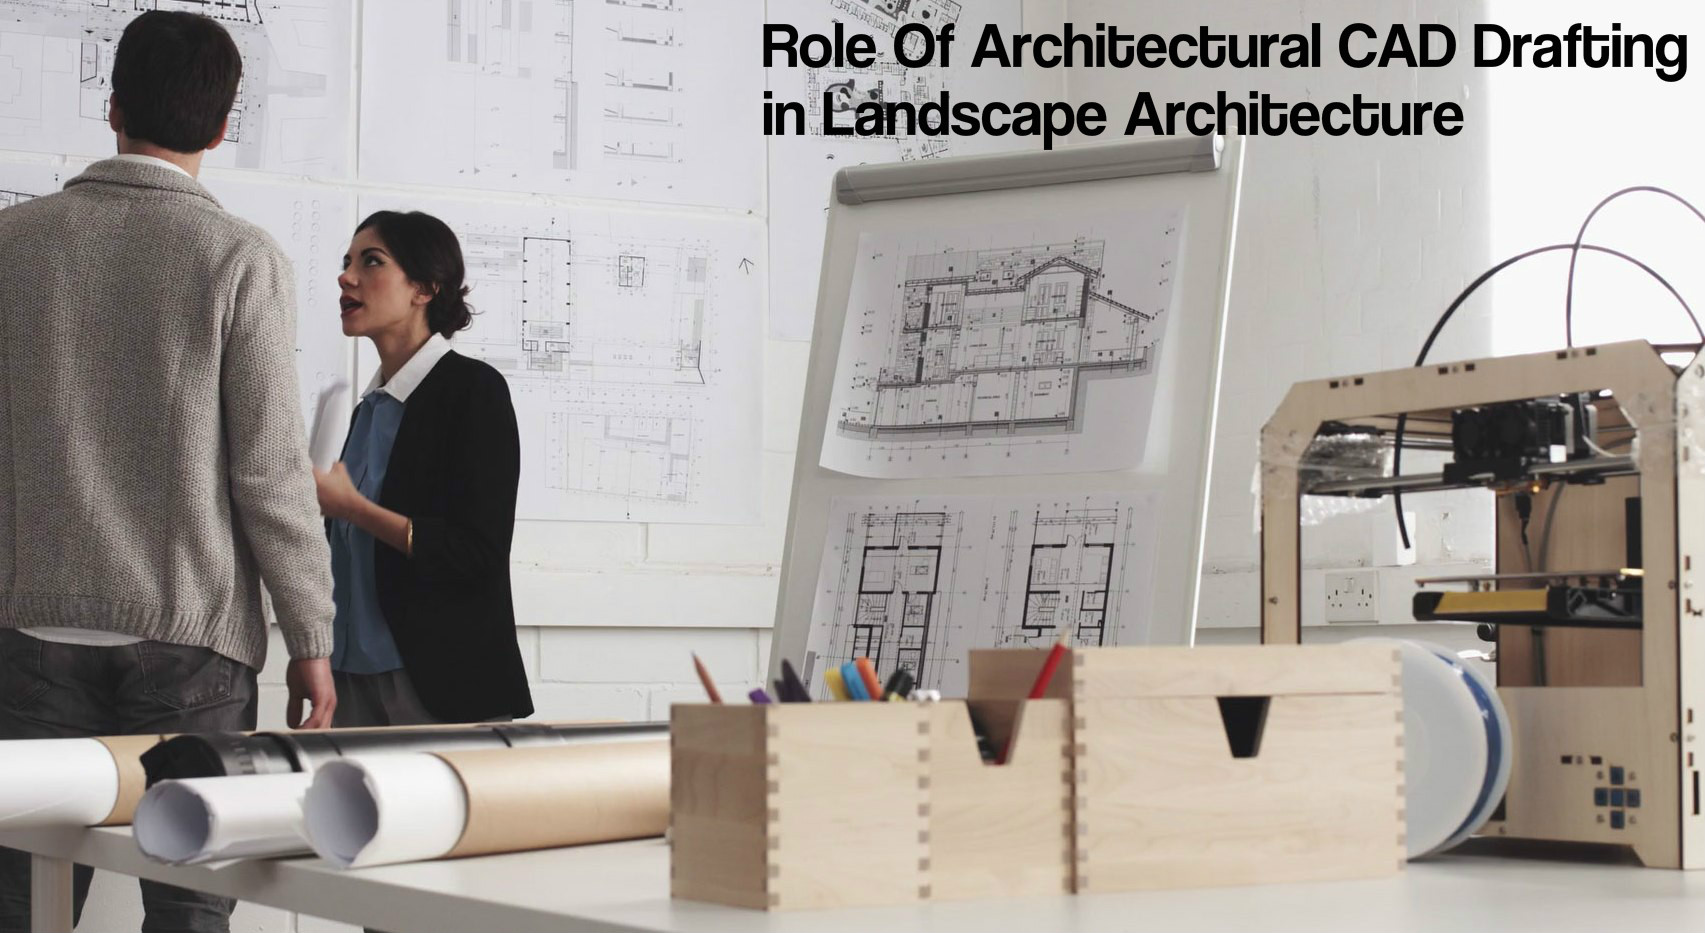 Architectural CAD drafting in landscape architecture